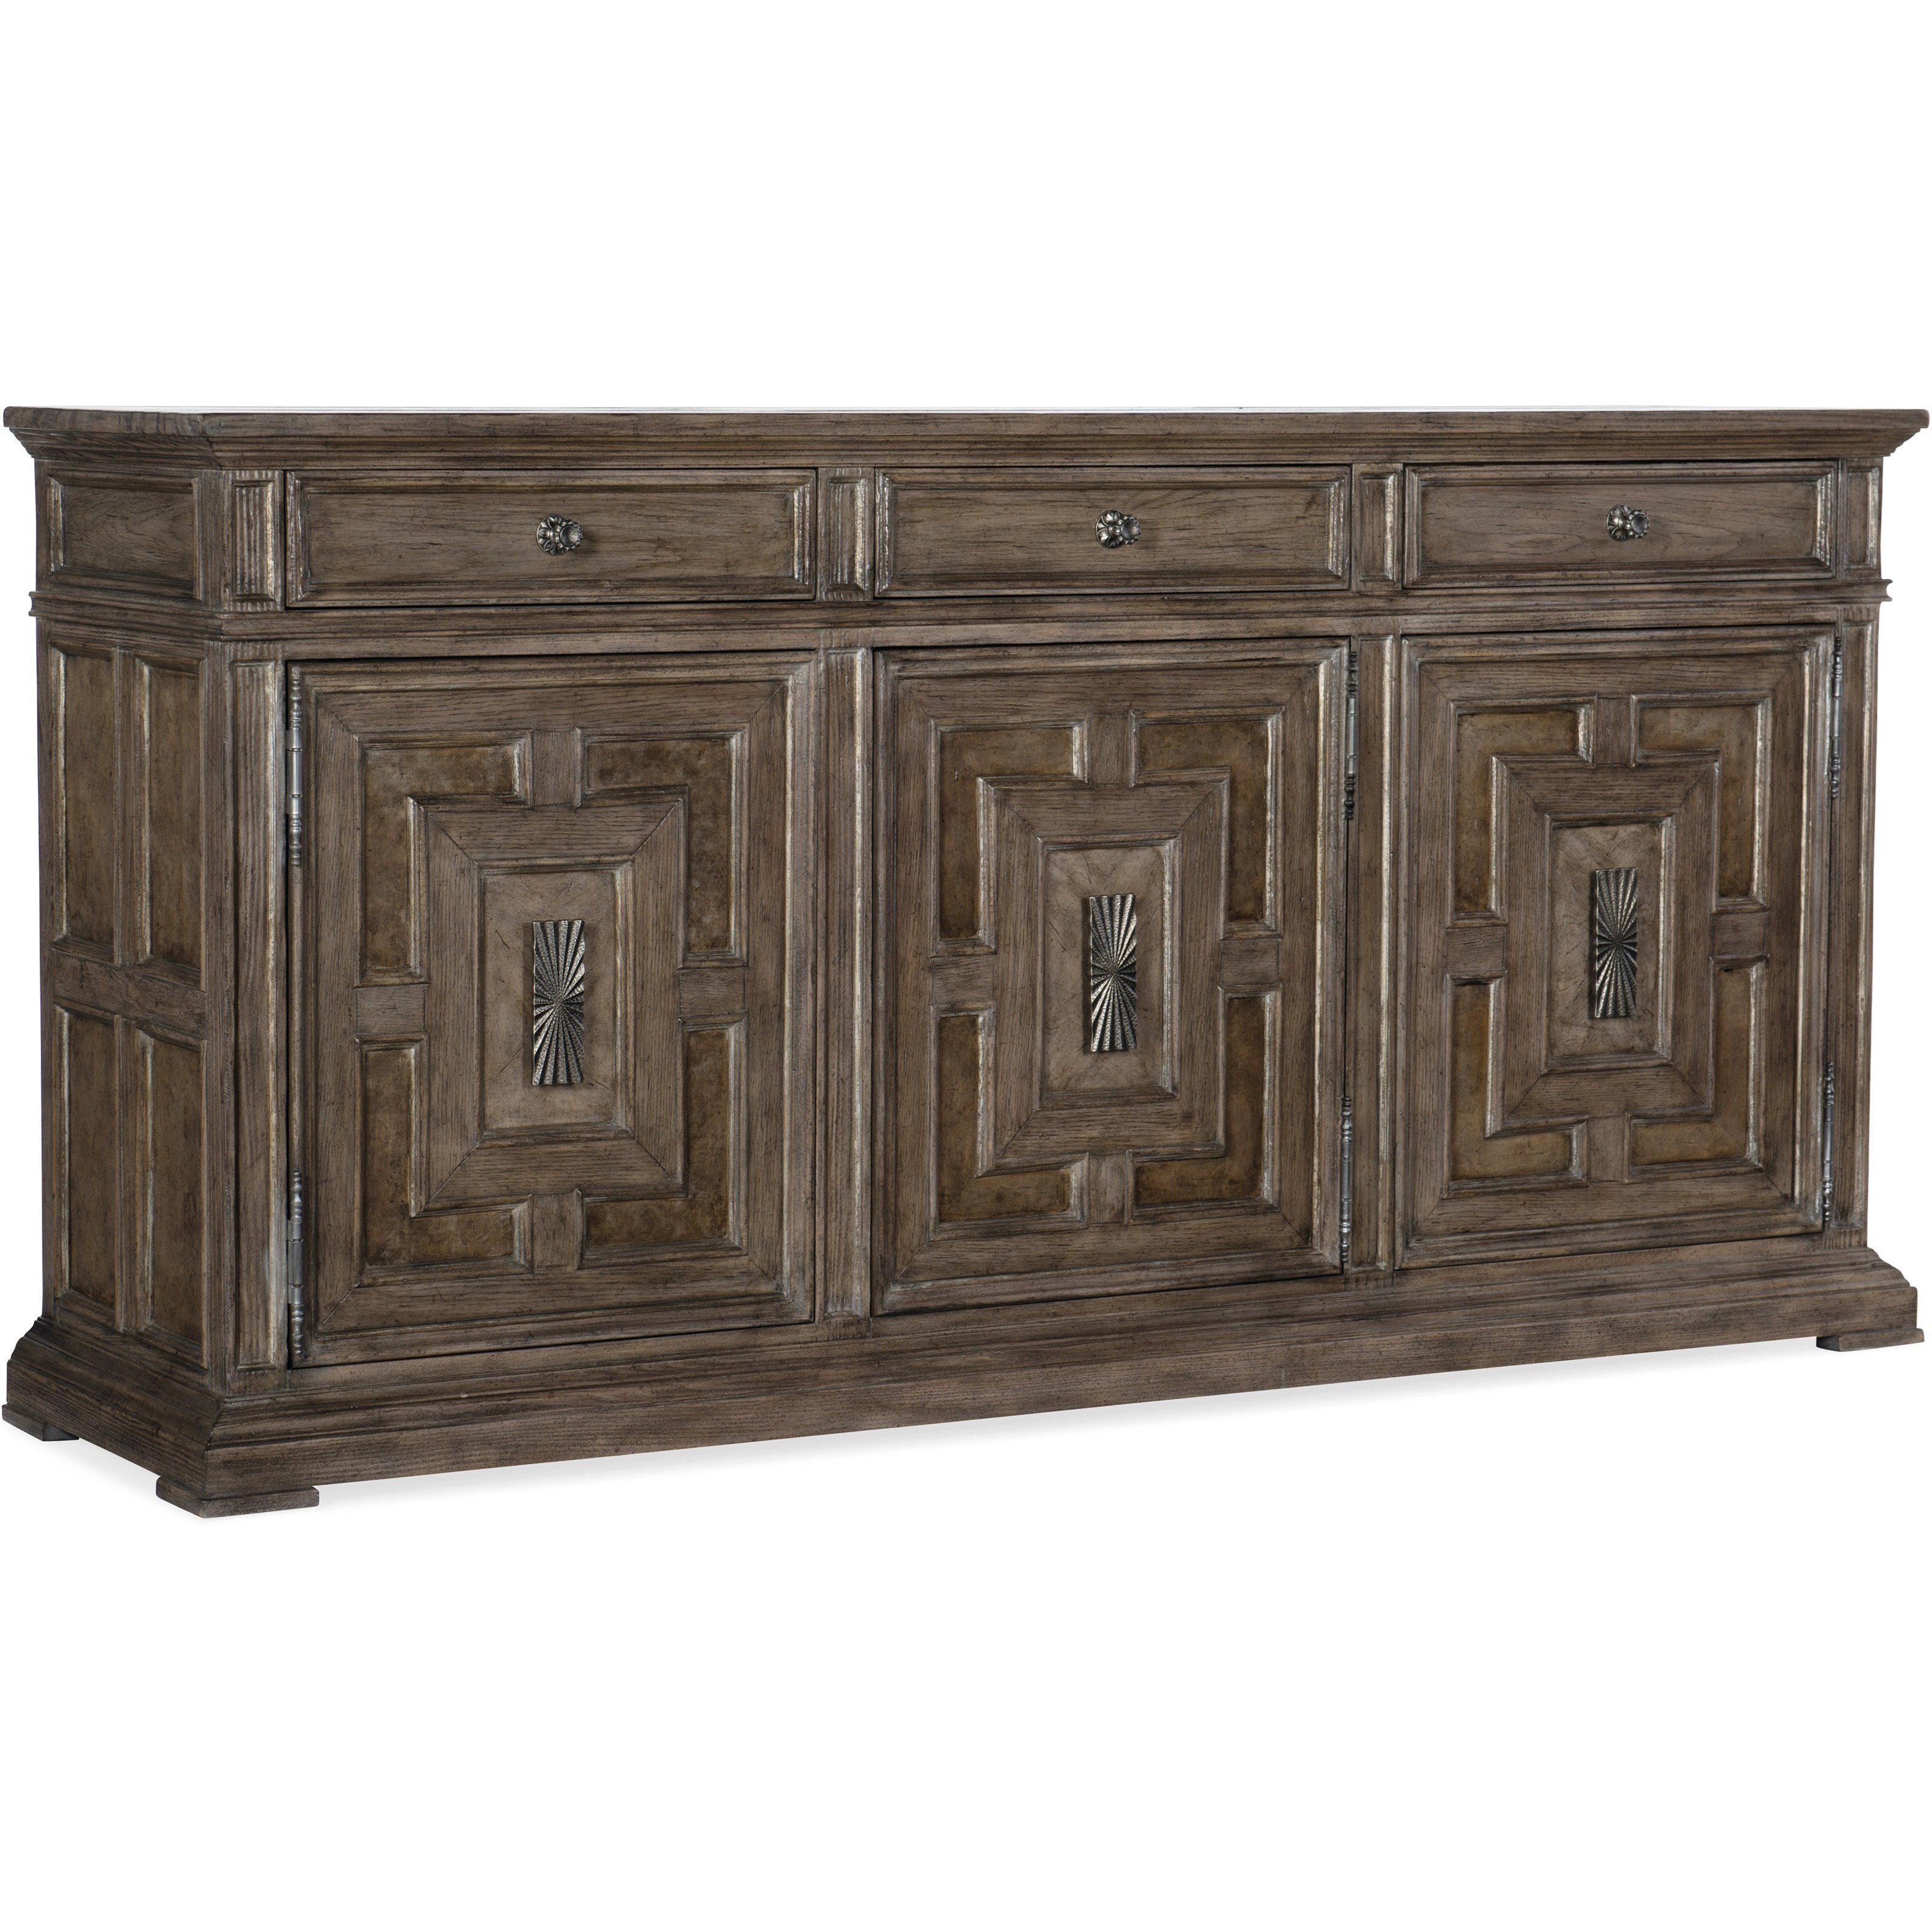 Woodlands Traditional 3-Door And 3-Drawer Buffethooker Furniture At  Dunk & Bright Furniture with 3-Drawer Storage Buffets (Image 30 of 30)